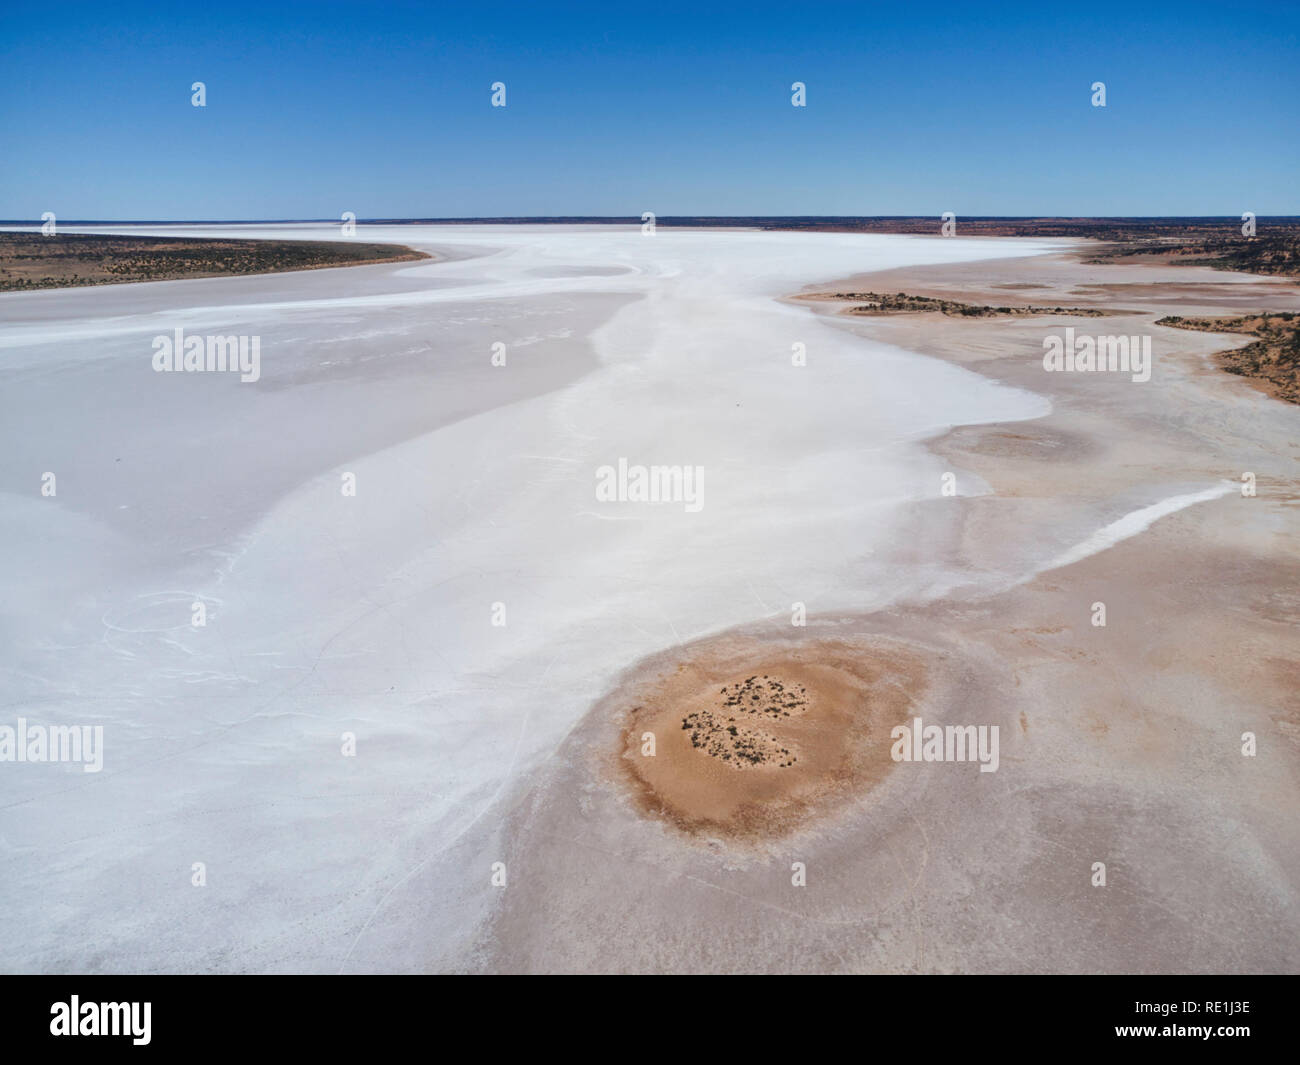 Aerial of the patterns on a salt encrusted lake known as island lagoon in the South Australian outback - Stock Image